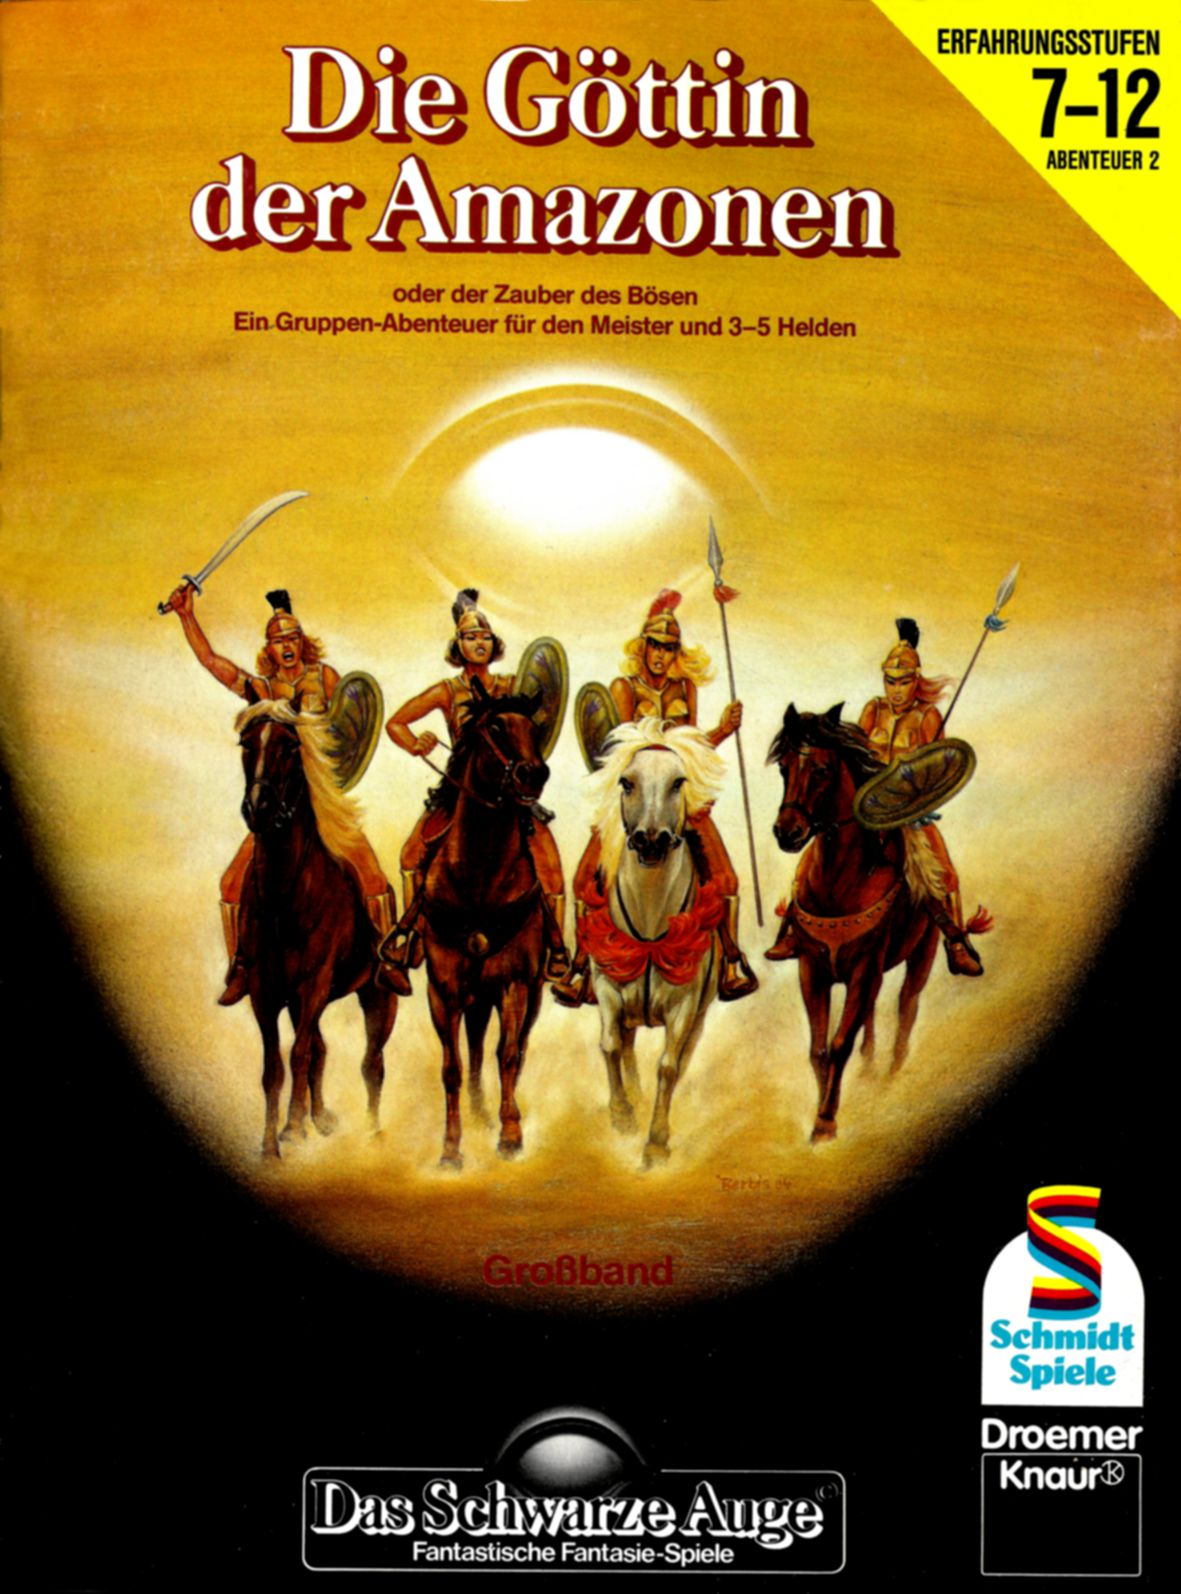 Retro-Rezension: Göttin der Amazonen